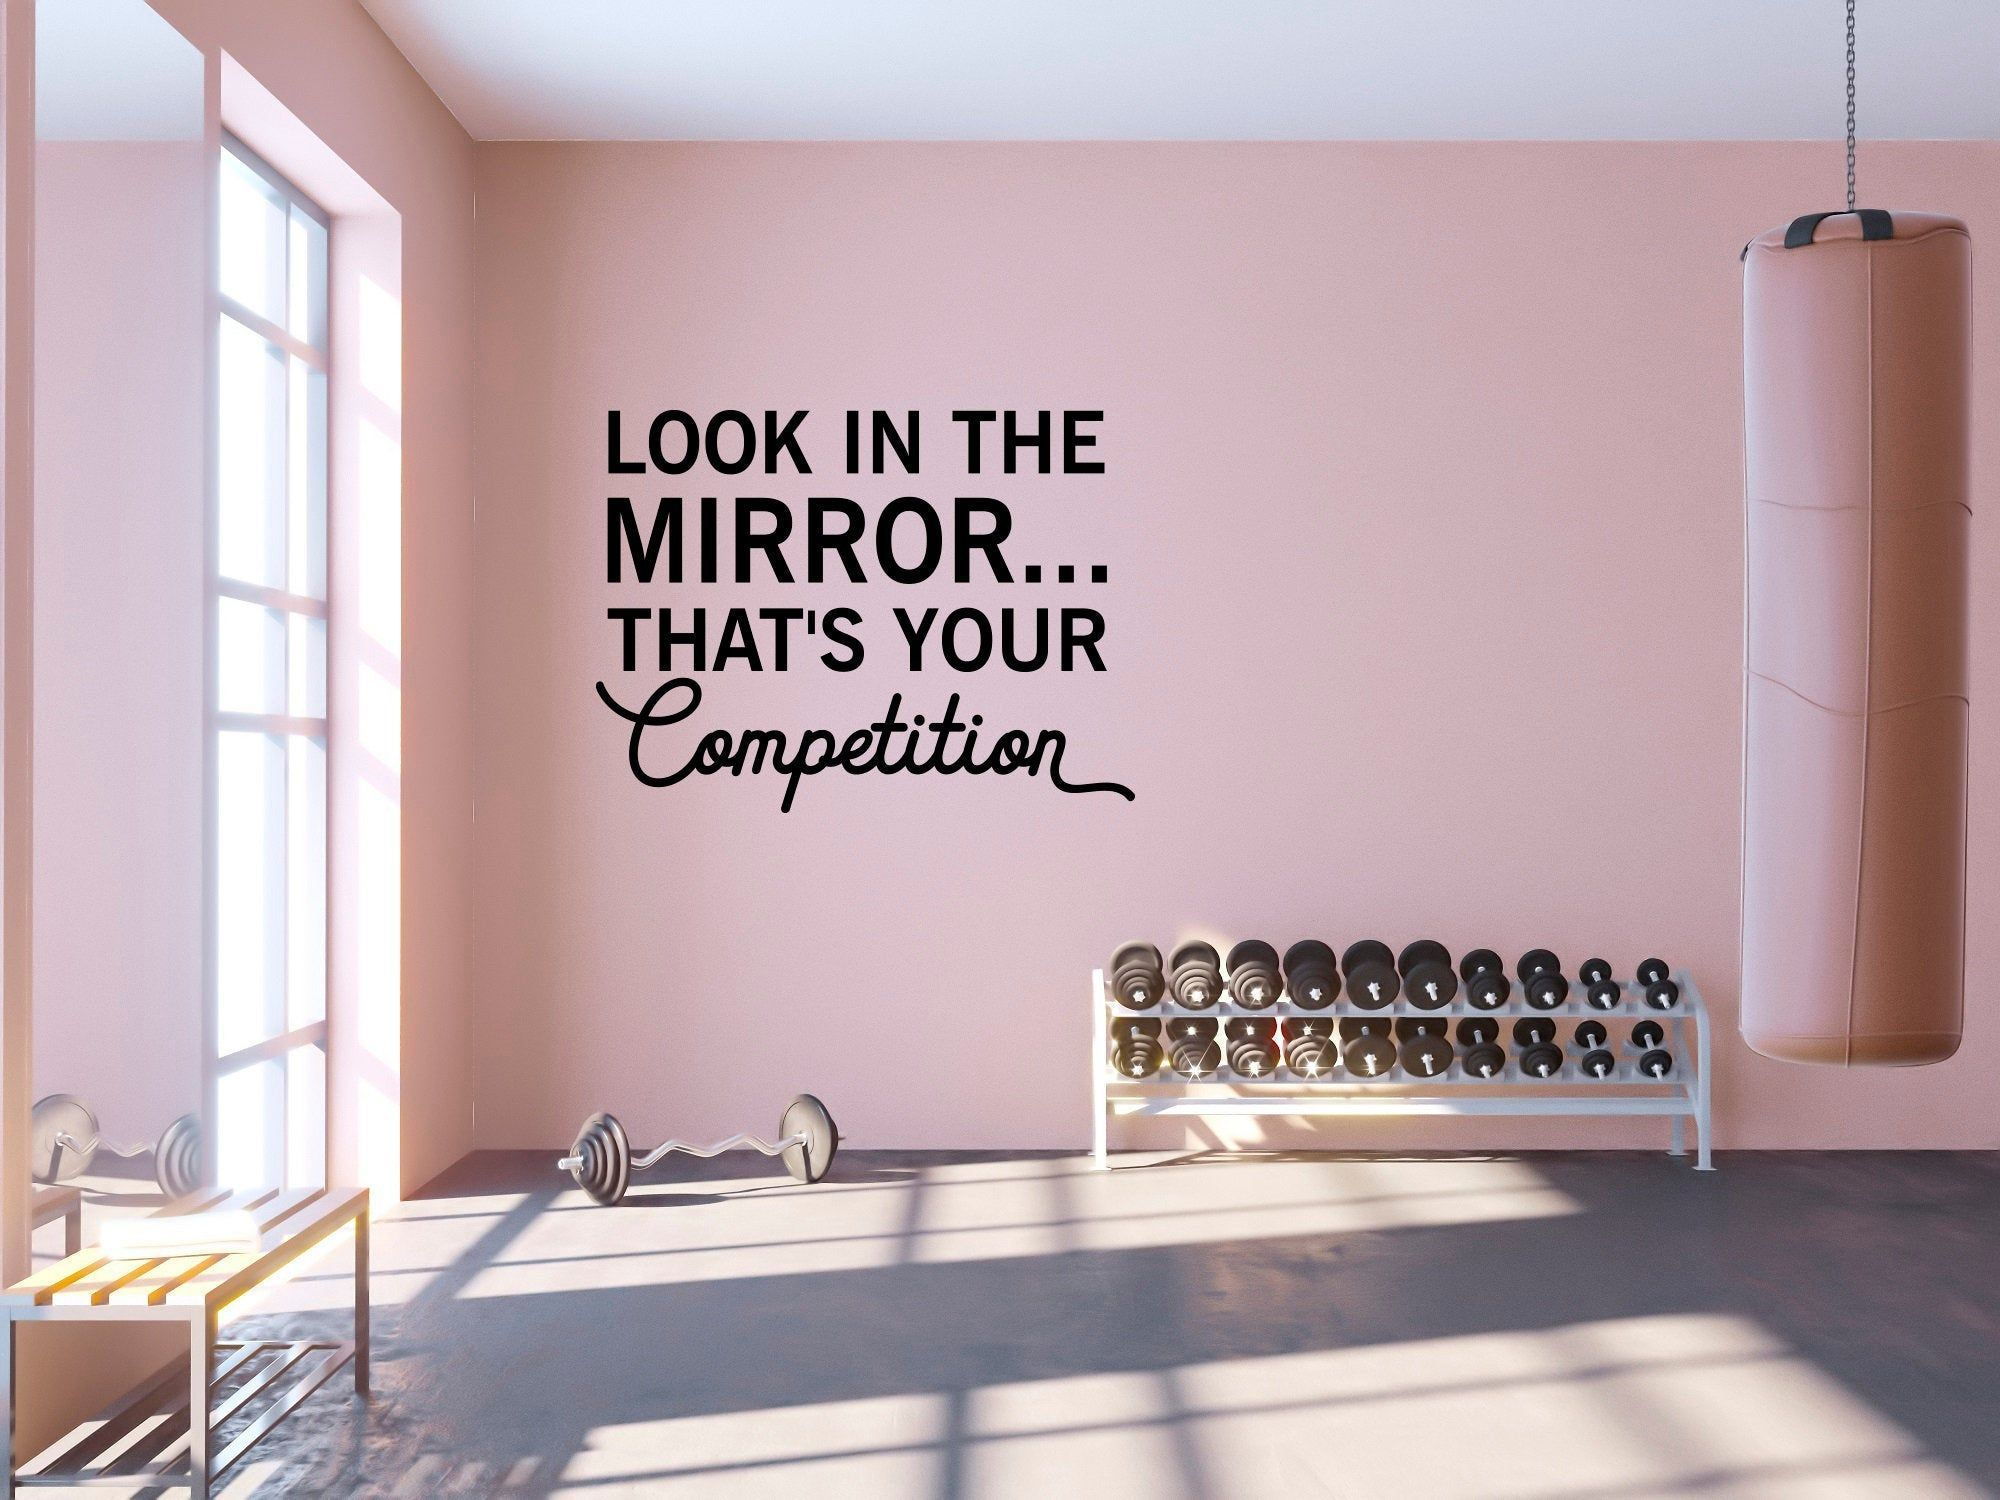 Look in the Mirror...That's Your Competition Quote Wall Decal - Sport Vinyl Stickers, Motivational Gym Decal, Fitness Quote Wall Decal SB155 -   19 fitness Room mall ideas